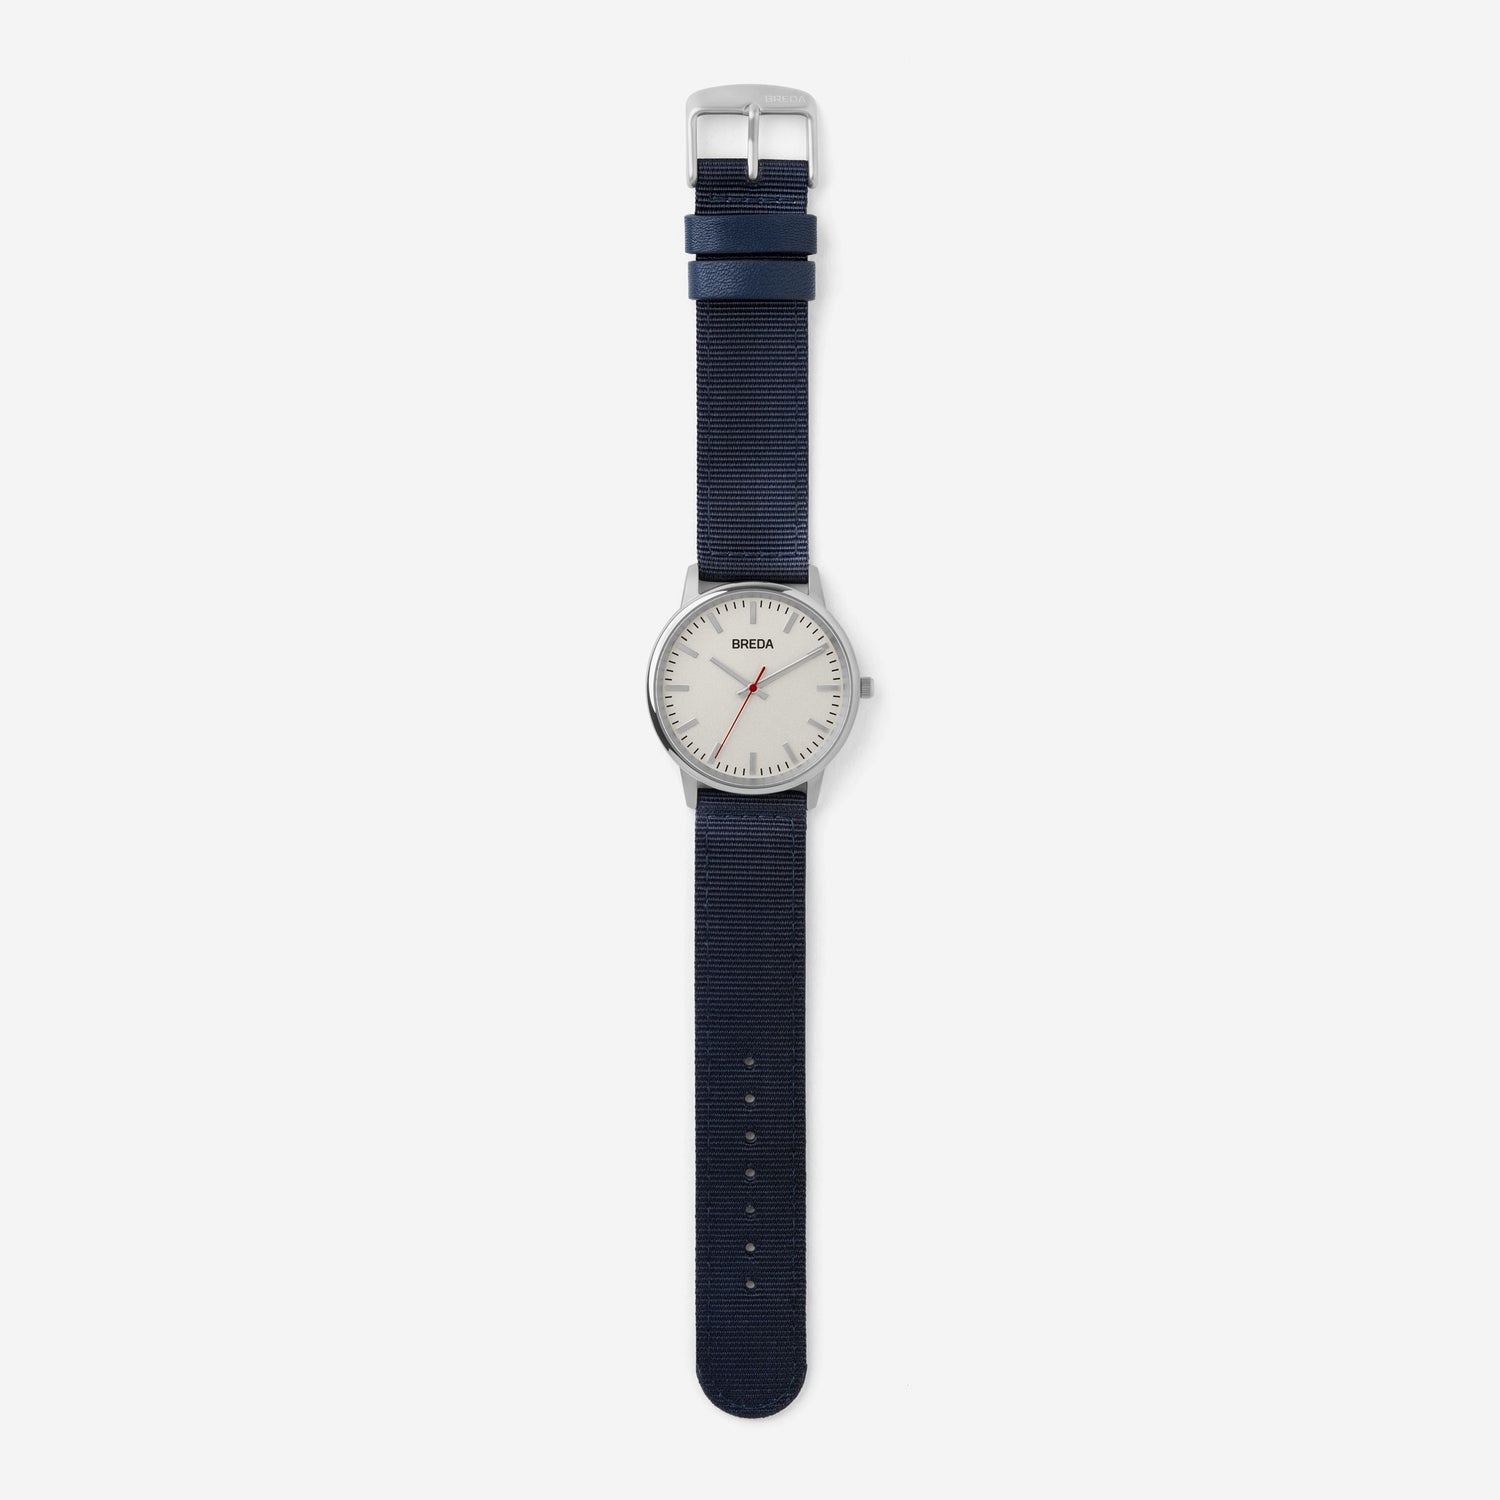 breda-valor-1707e-silver-navy-watch-long